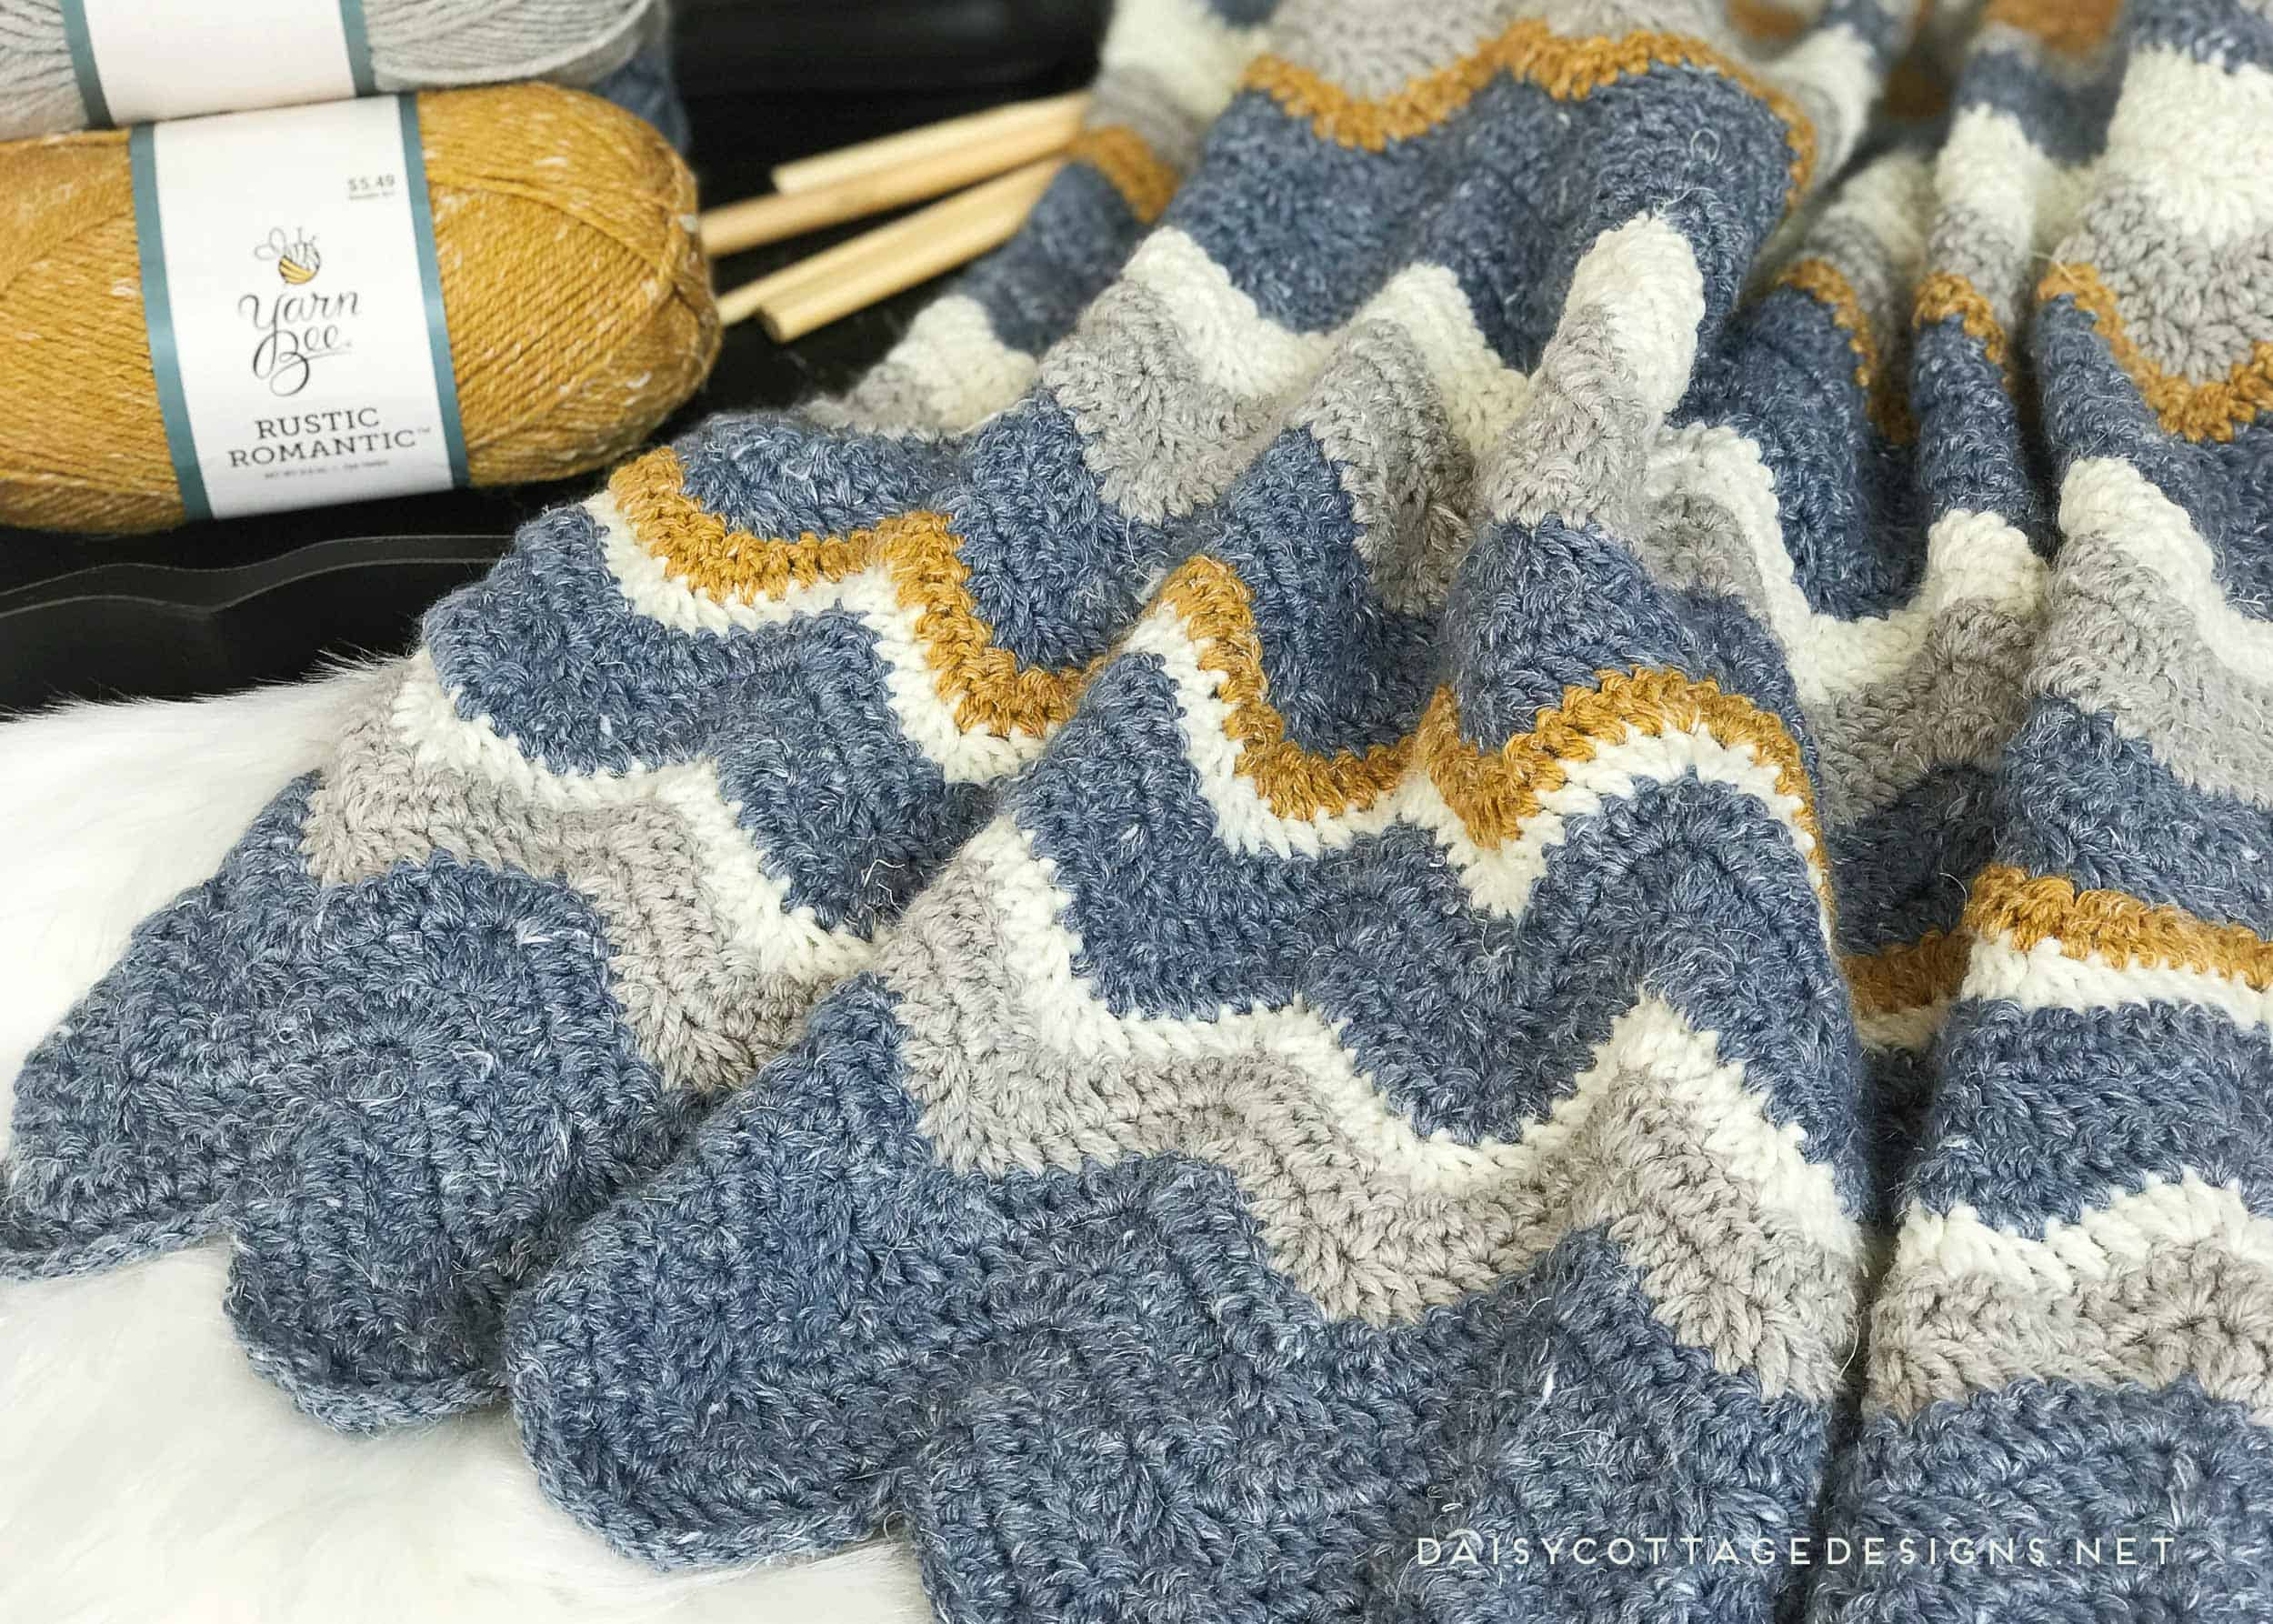 Pretty Chevron Blanket Crochet Pattern - Daisy Cottage Designs